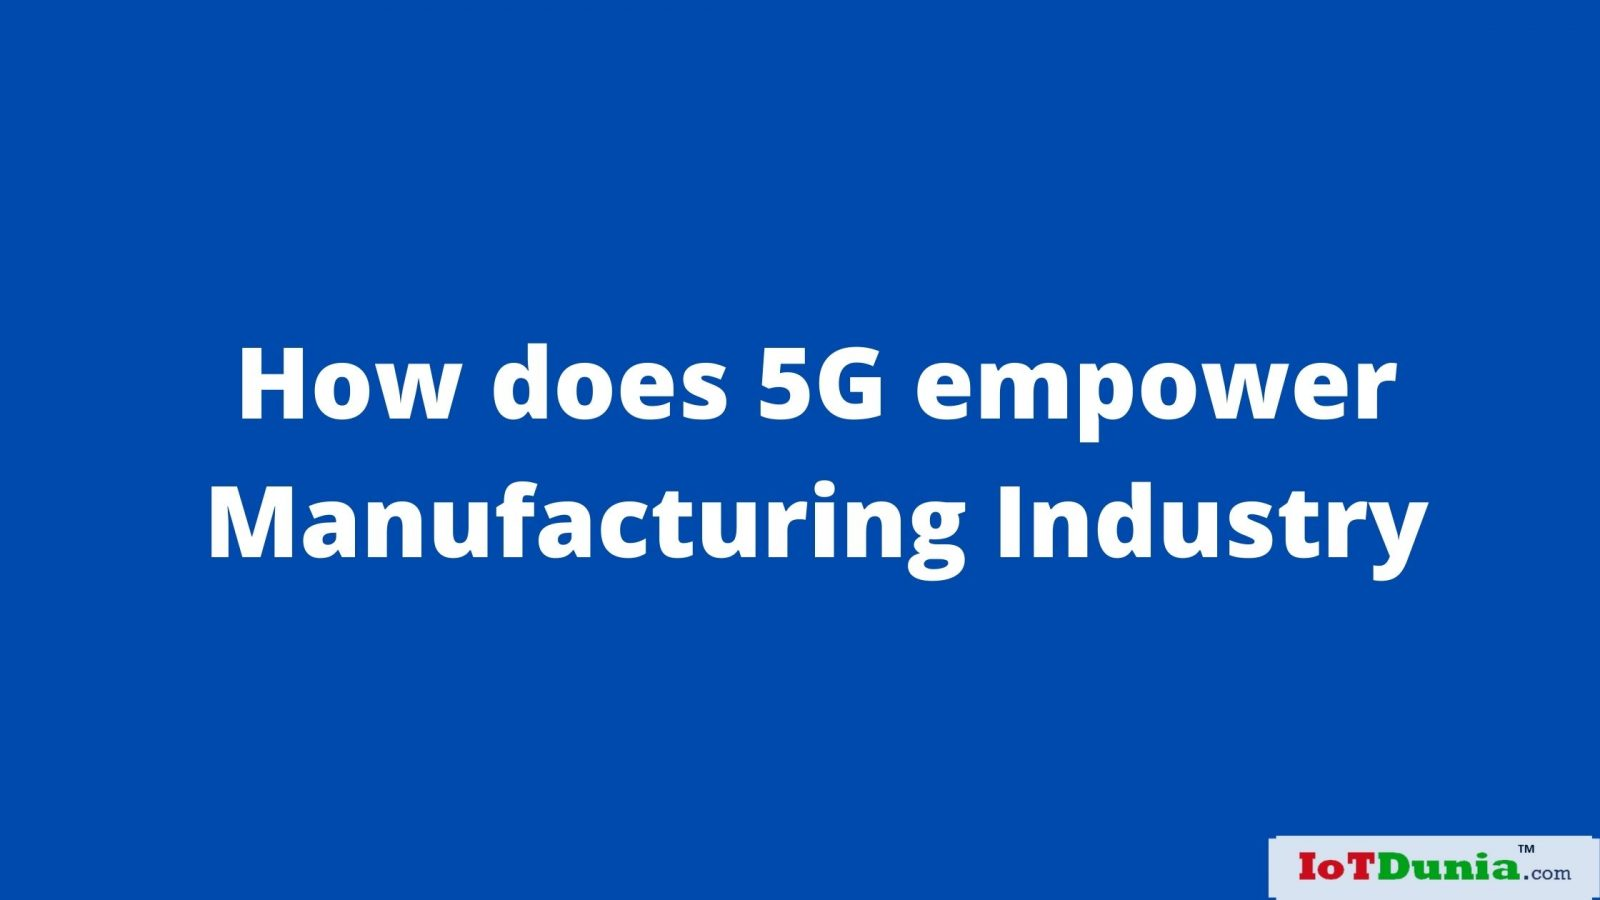 5G and Manufacturing : 5G technology applications